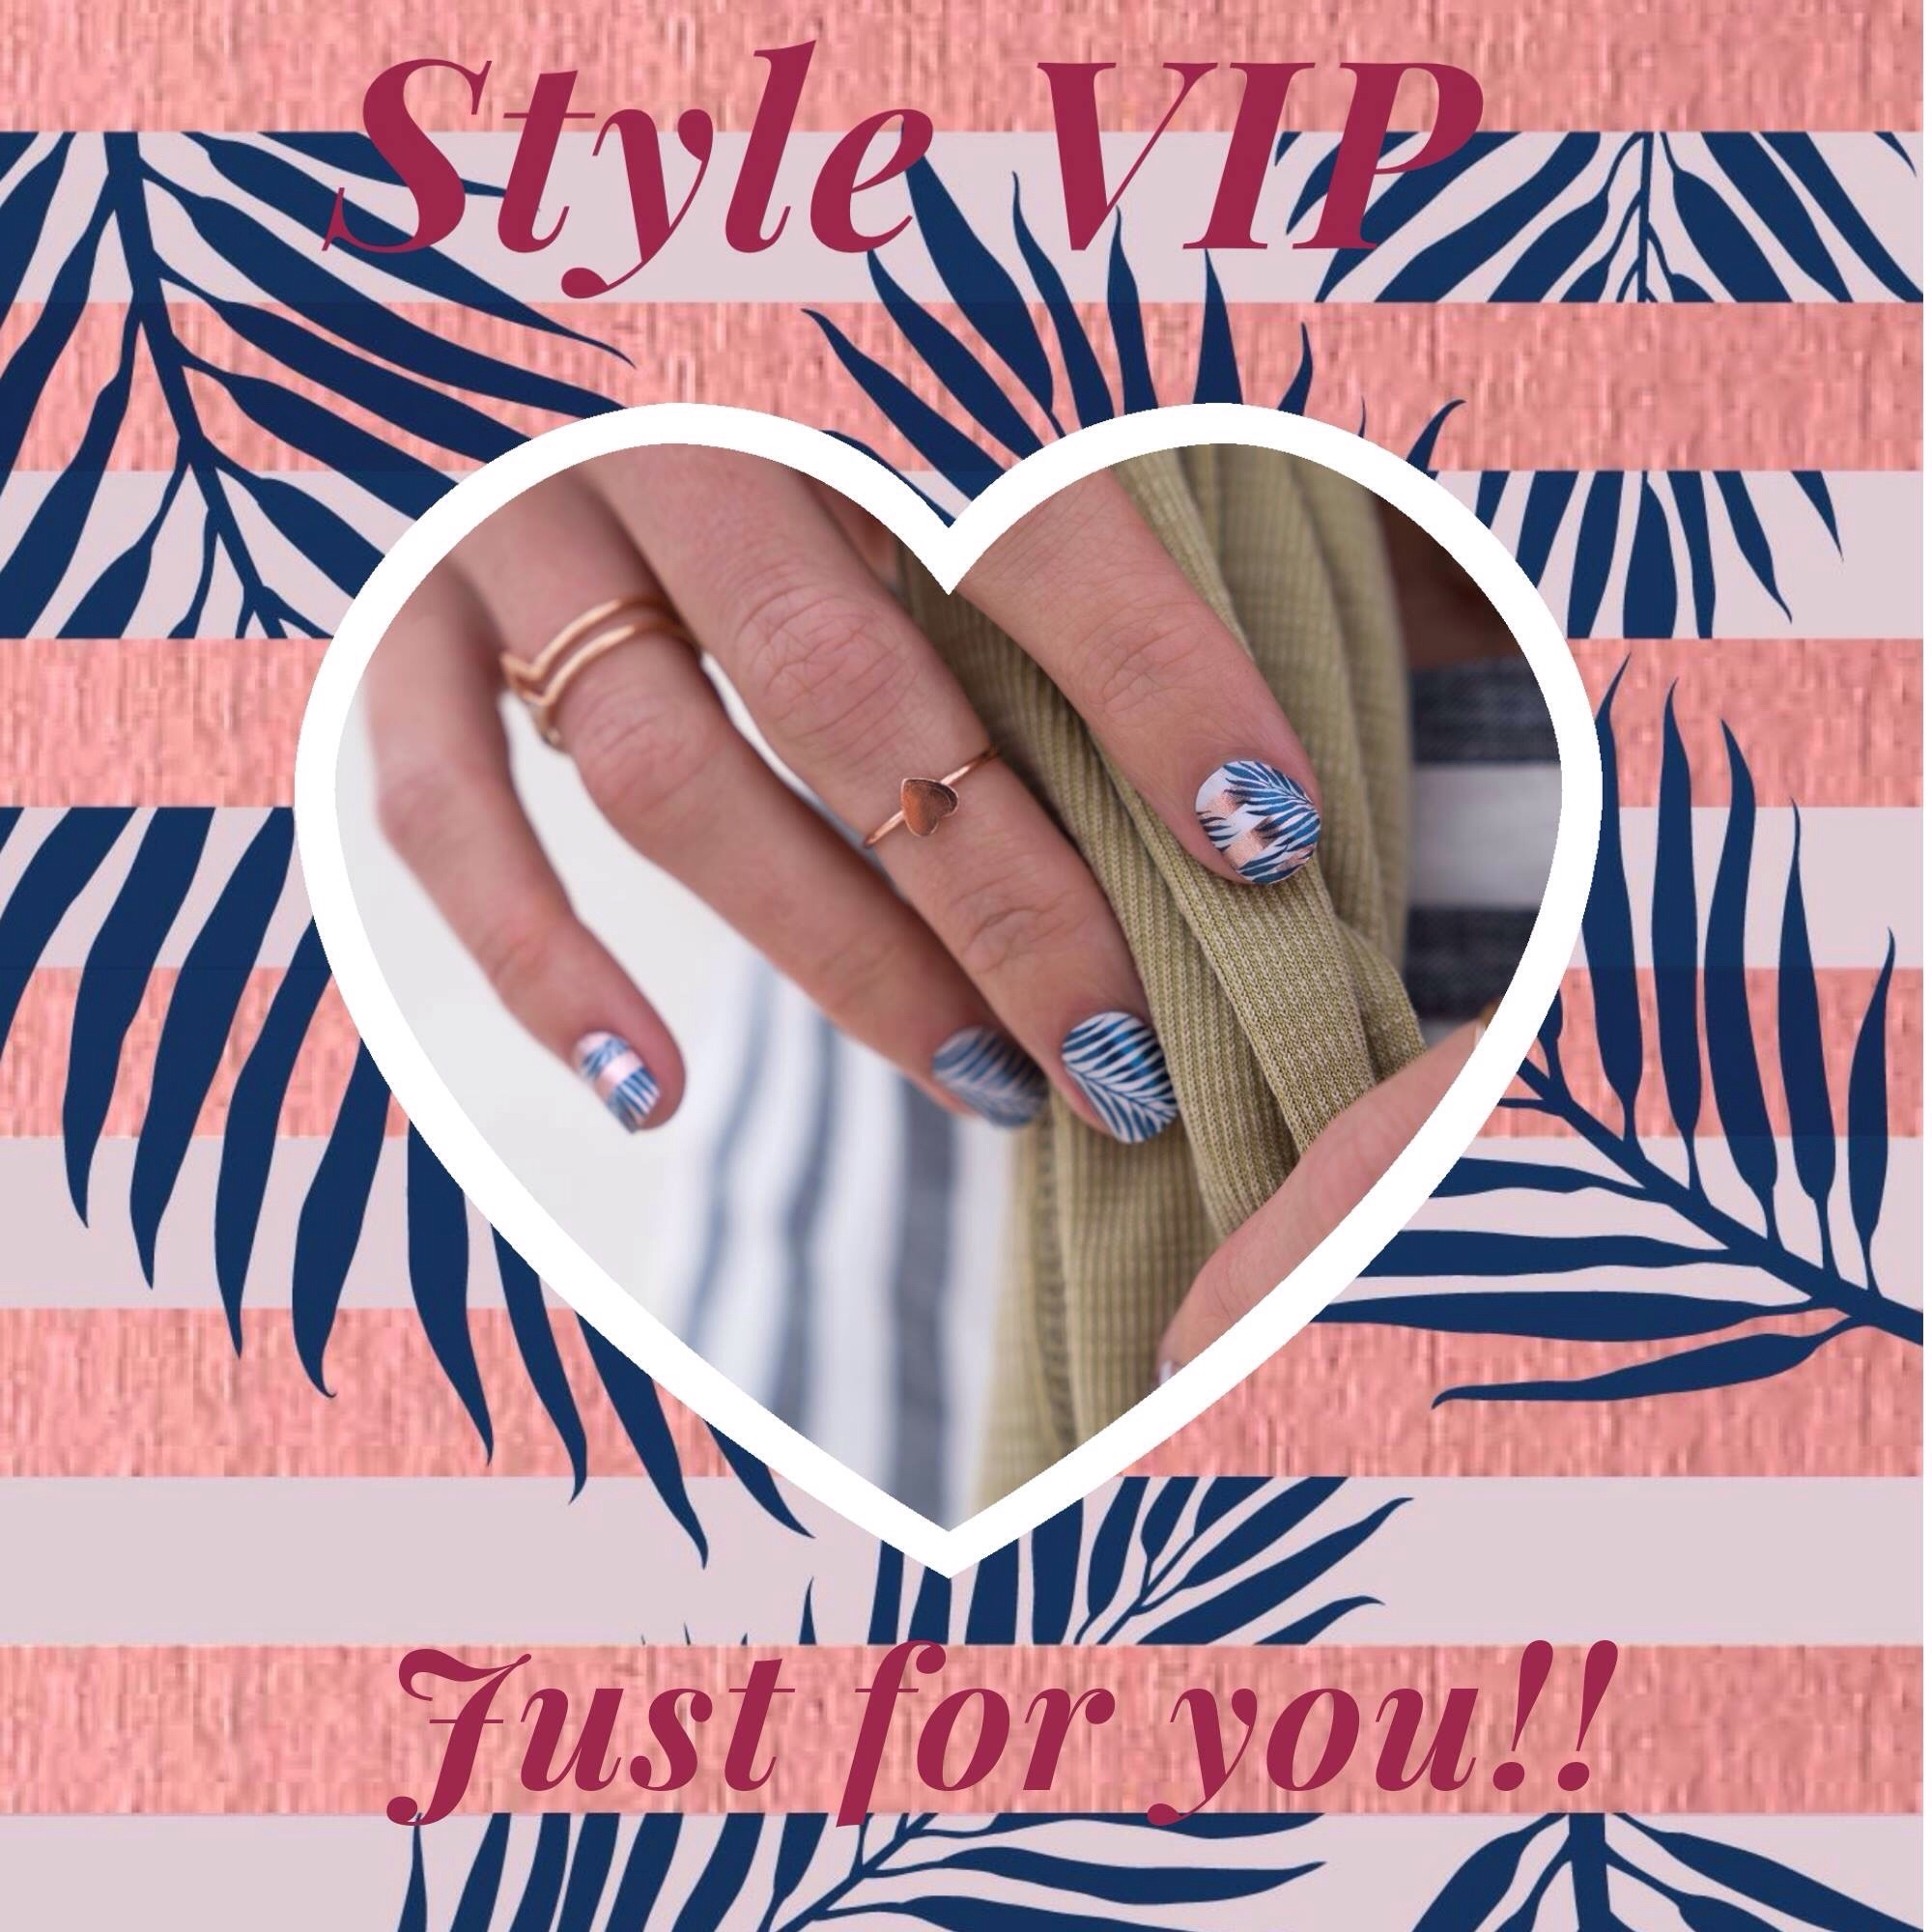 FREE WRAP FOR STYLE VIP!!